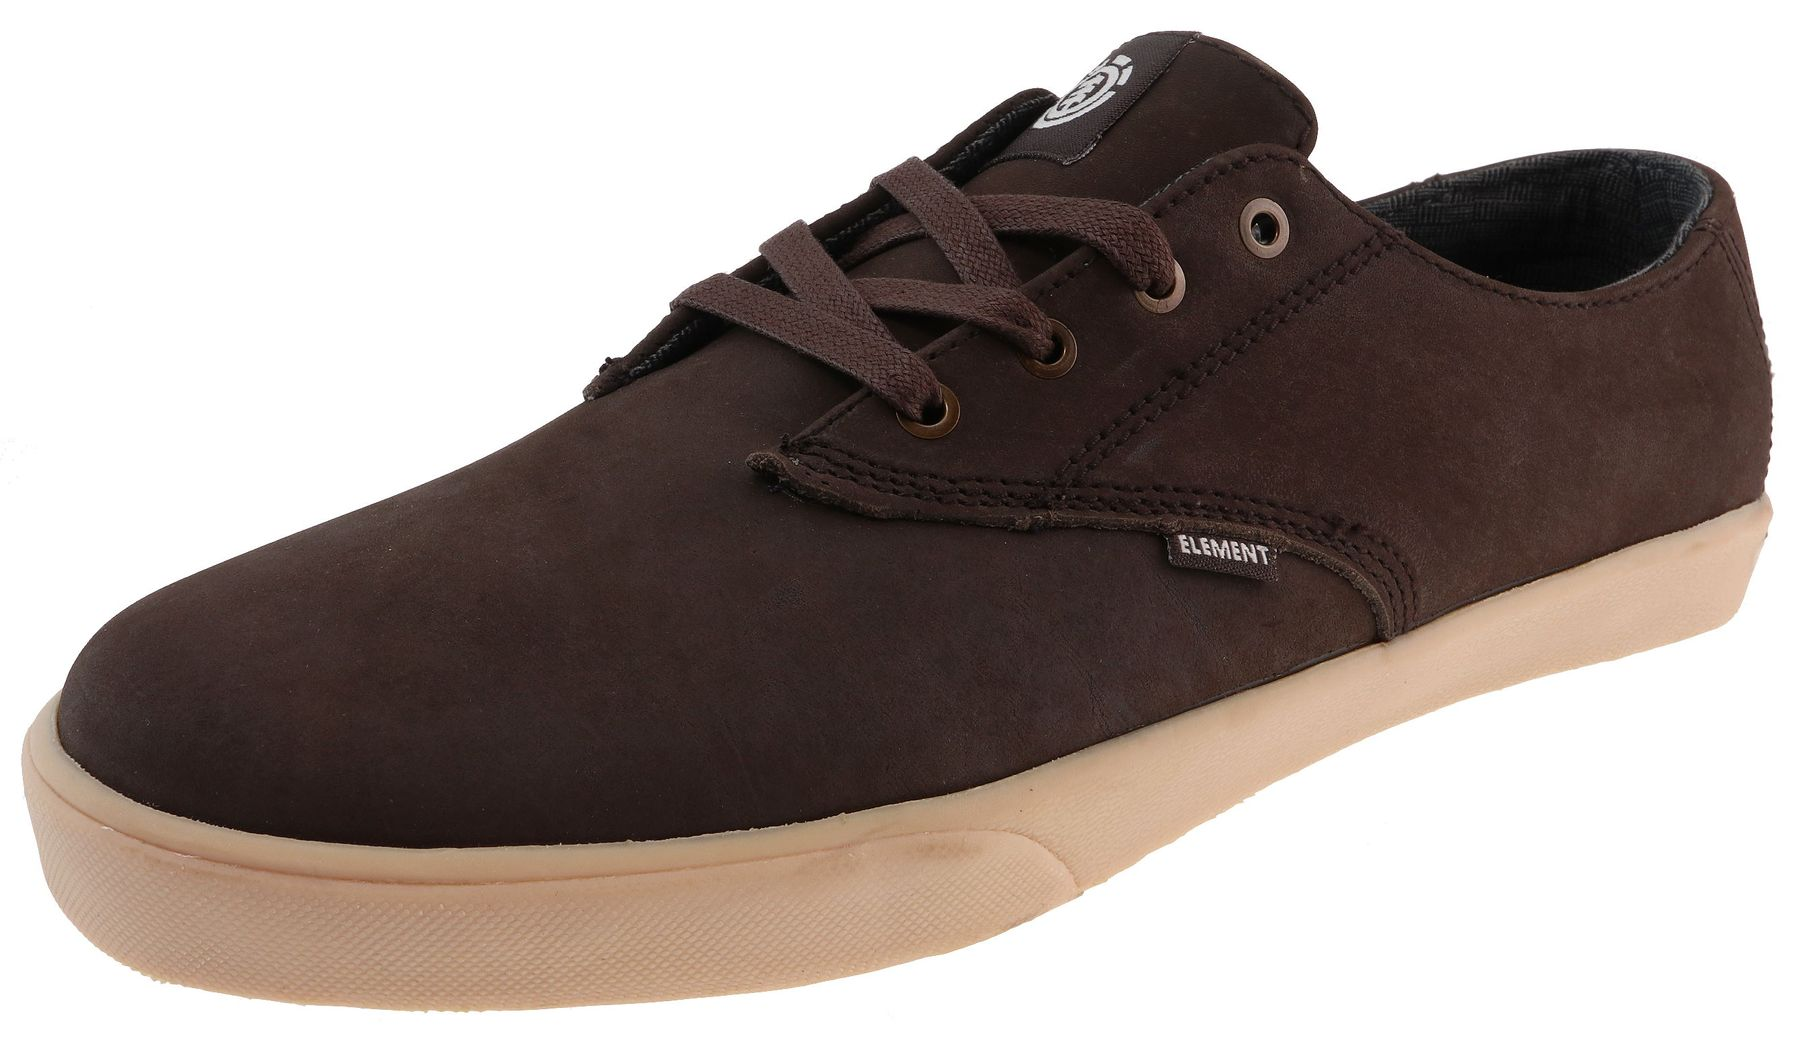 Element  VERNON WALNUT PREMIUM Herren_Skaterschuhe